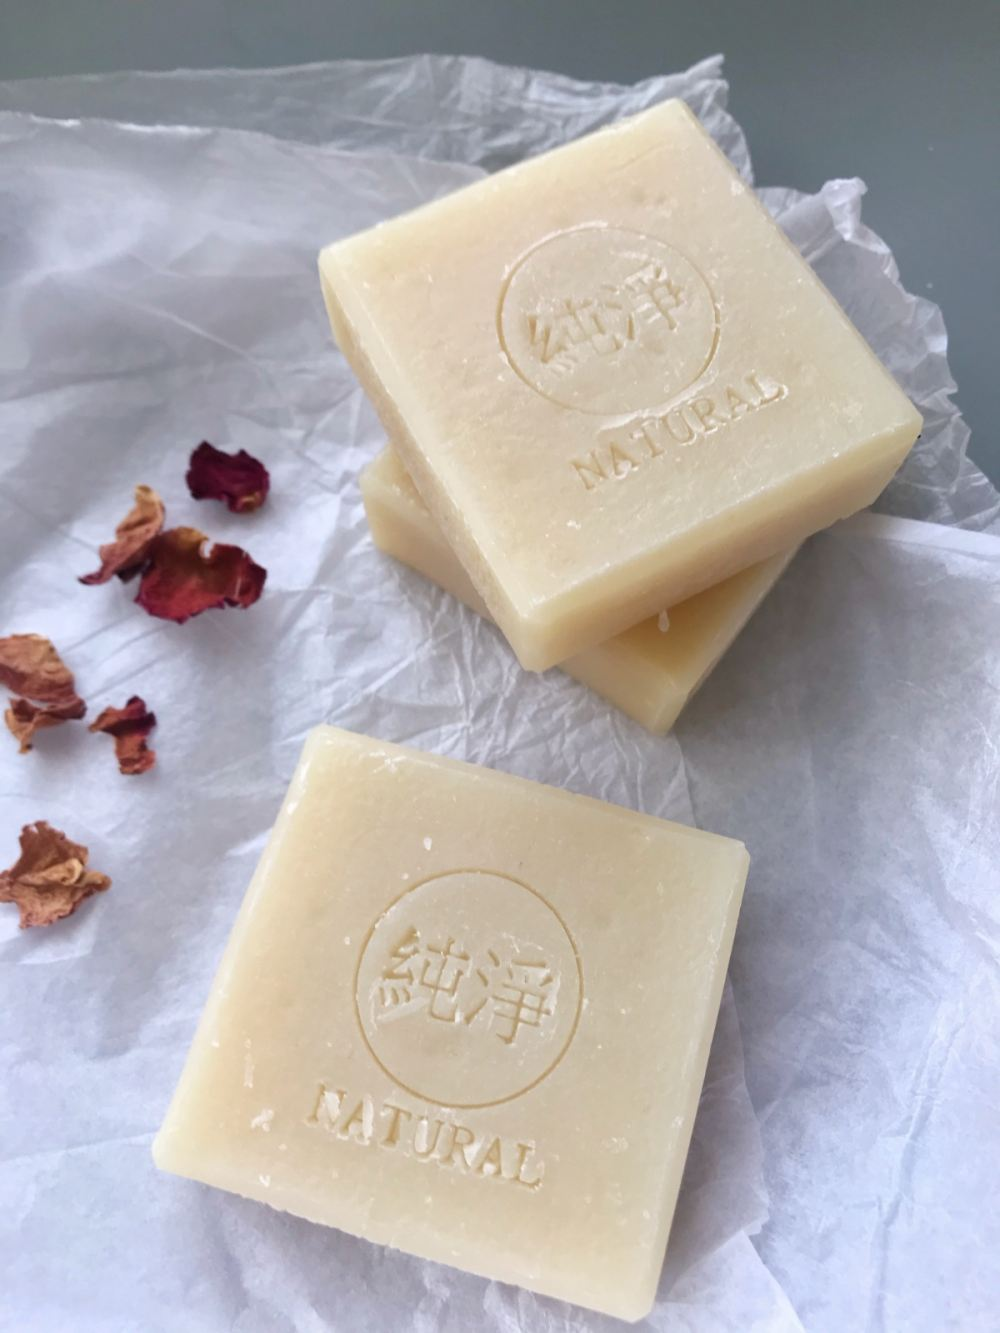 Rice and tragacanth gum soap